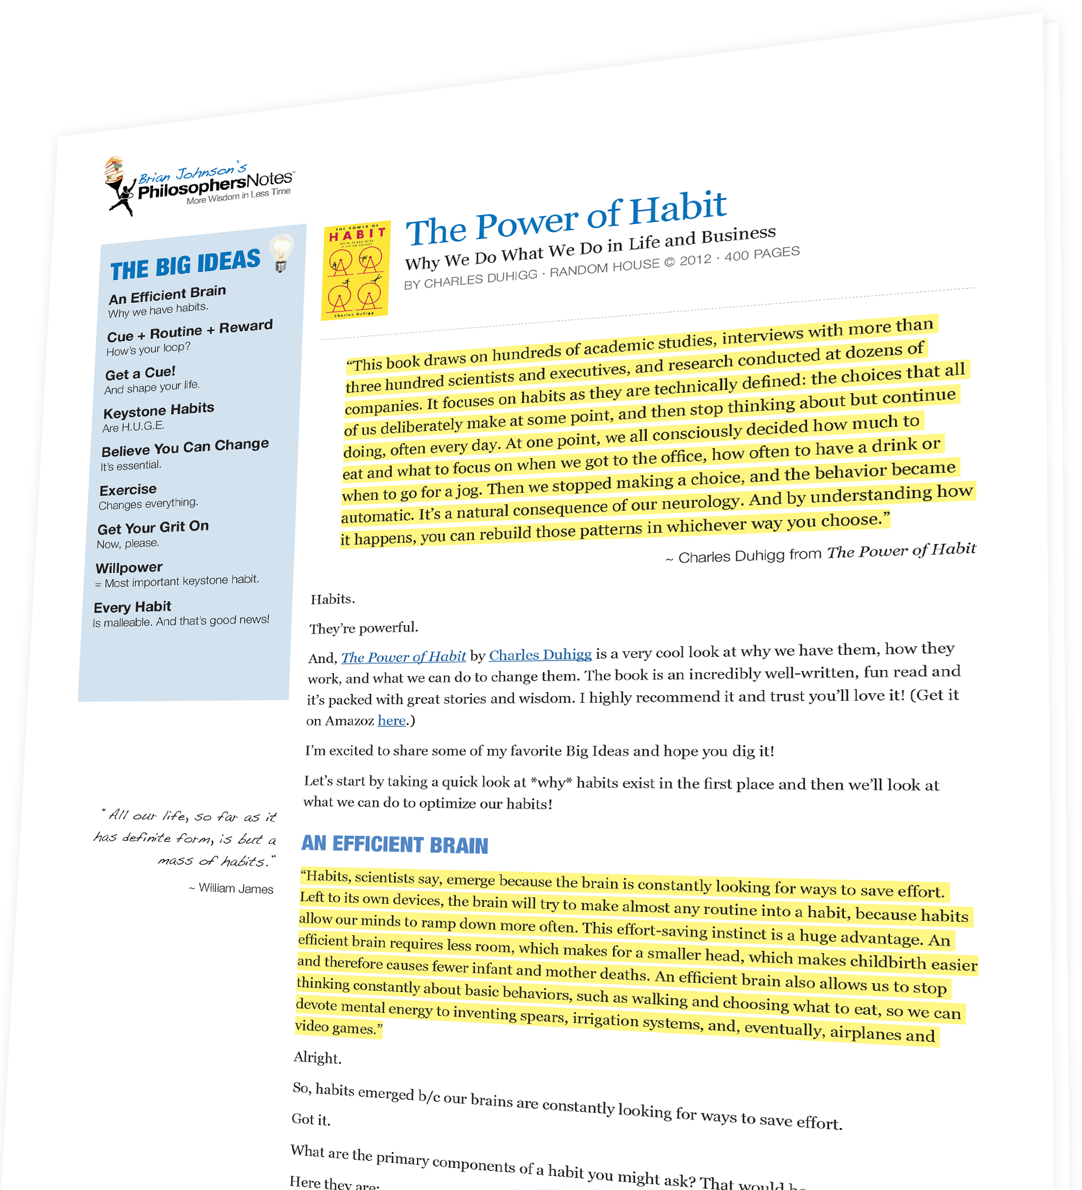 The Power of Habit by Charles Duhigg - PhilosophersNotes